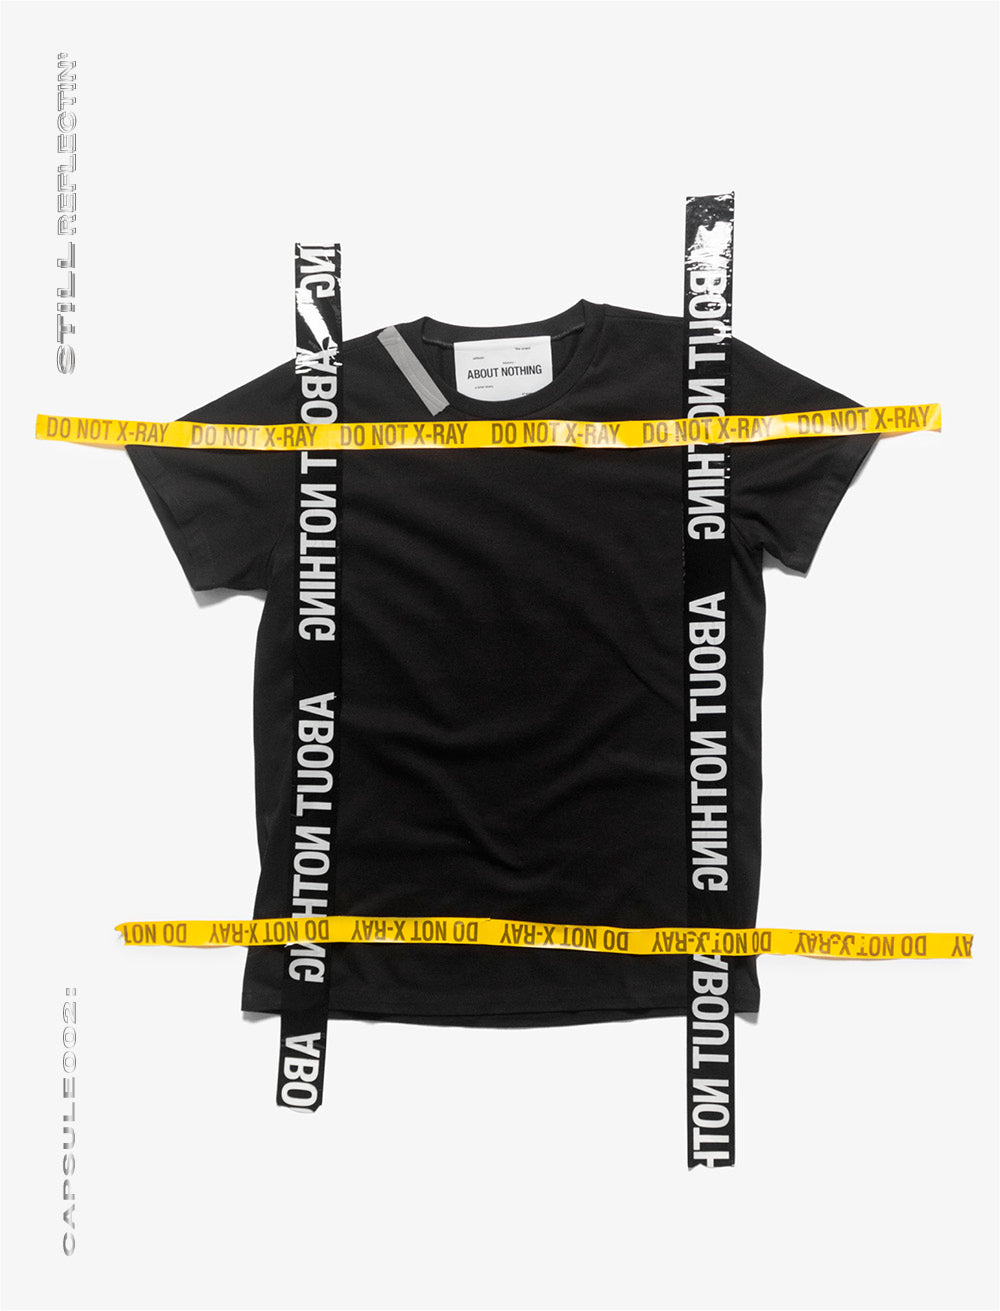 T_SHIRT [BLACK]  // REFLECTIVE TAPE